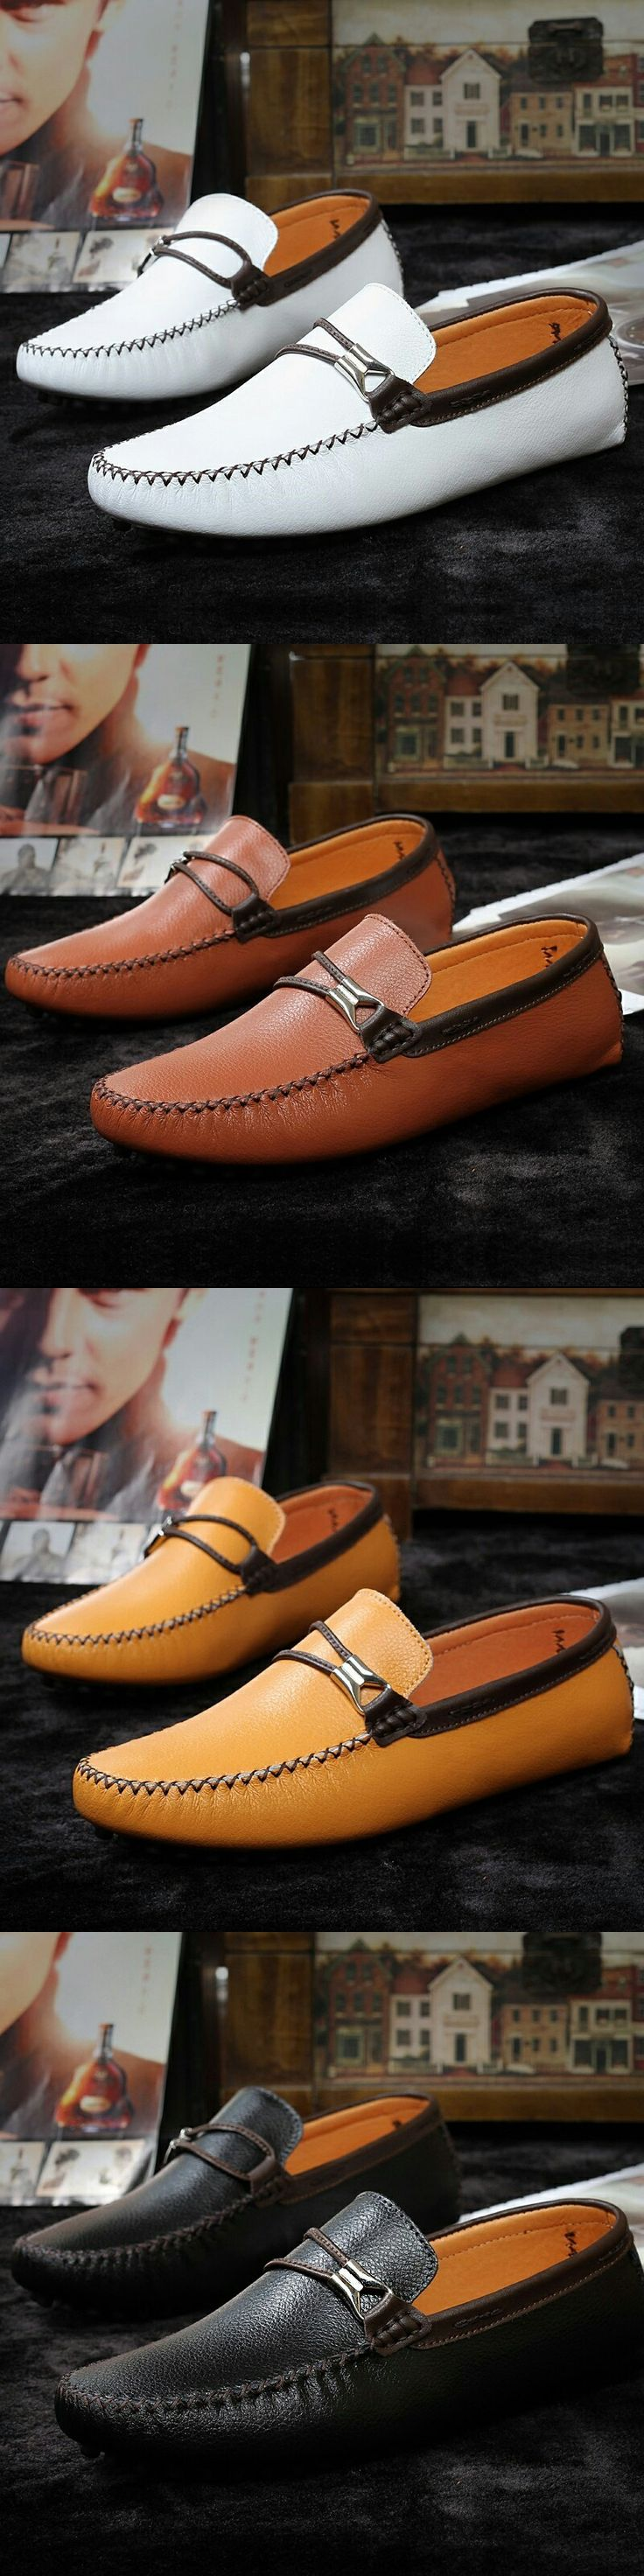 US $25 <Click to buy> Prelesty Gorgeous Luxury Leather Boat Shoes Mens Top Sider Driving Shoes